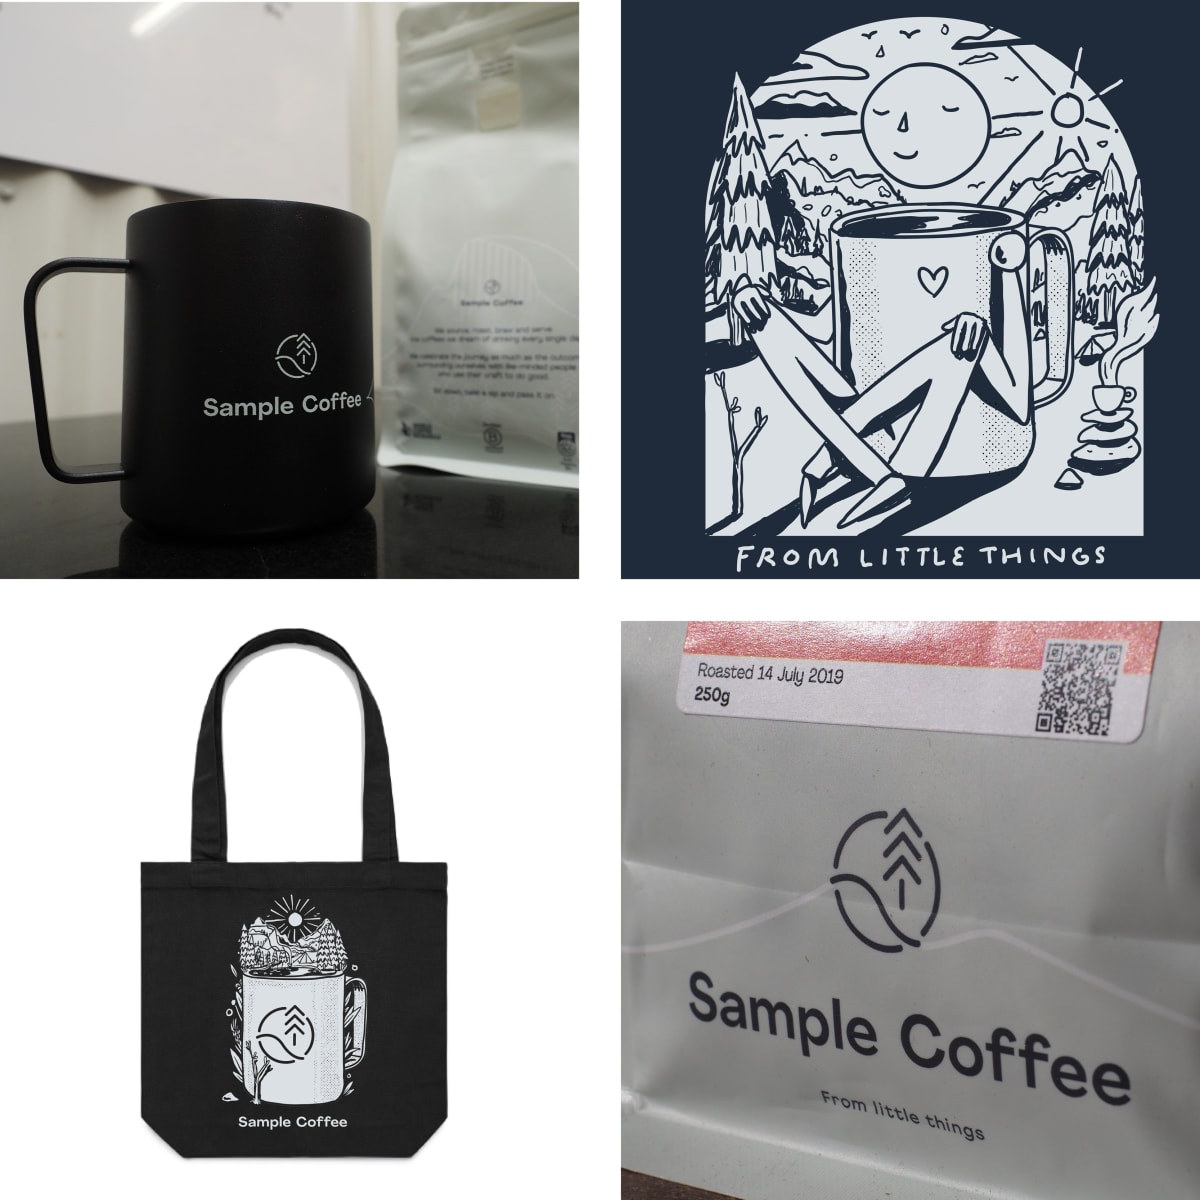 Photos depicting the current era of Sample's branding